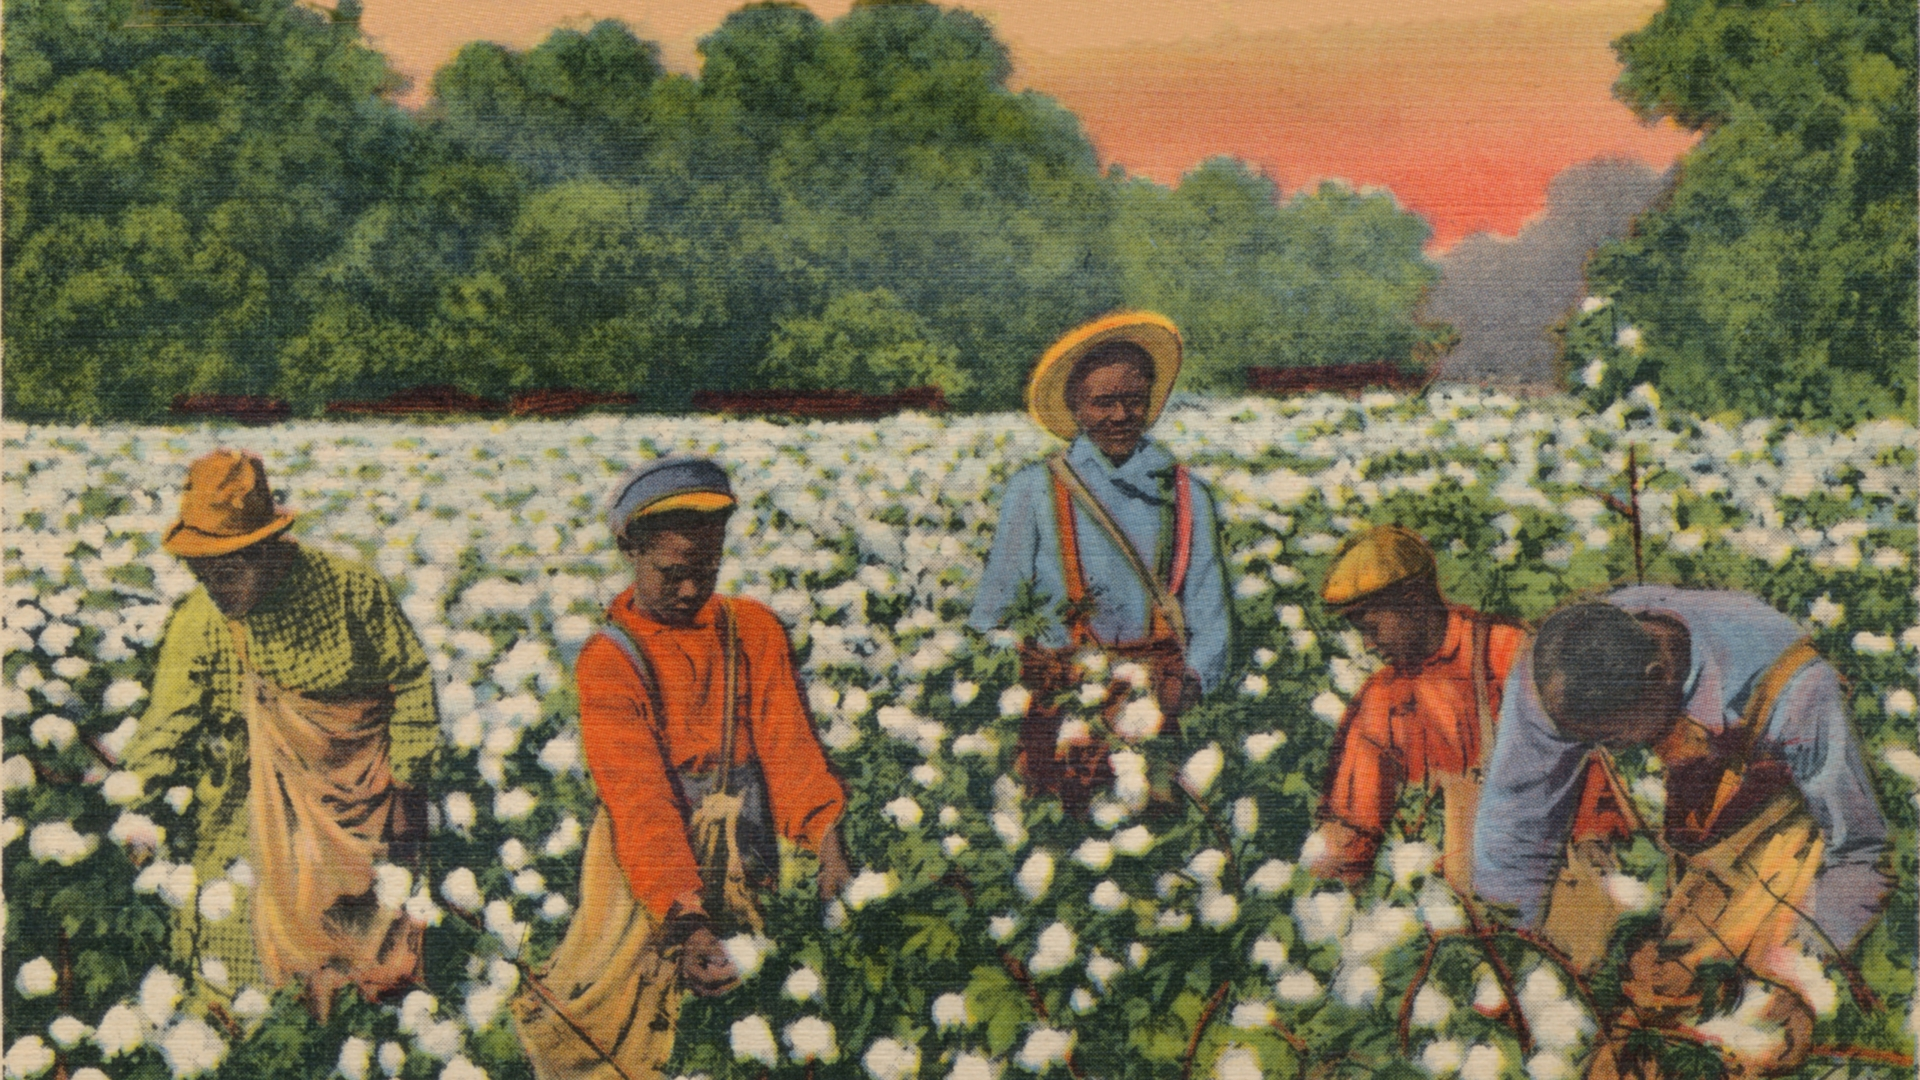 Early 1900s postcard featuring slaves picking cotton. Bucolic images of slave life perpetuated the myth that blacks were better off under white people's oversight. (Credit: The Print Collector/Print Collector/Getty Images)